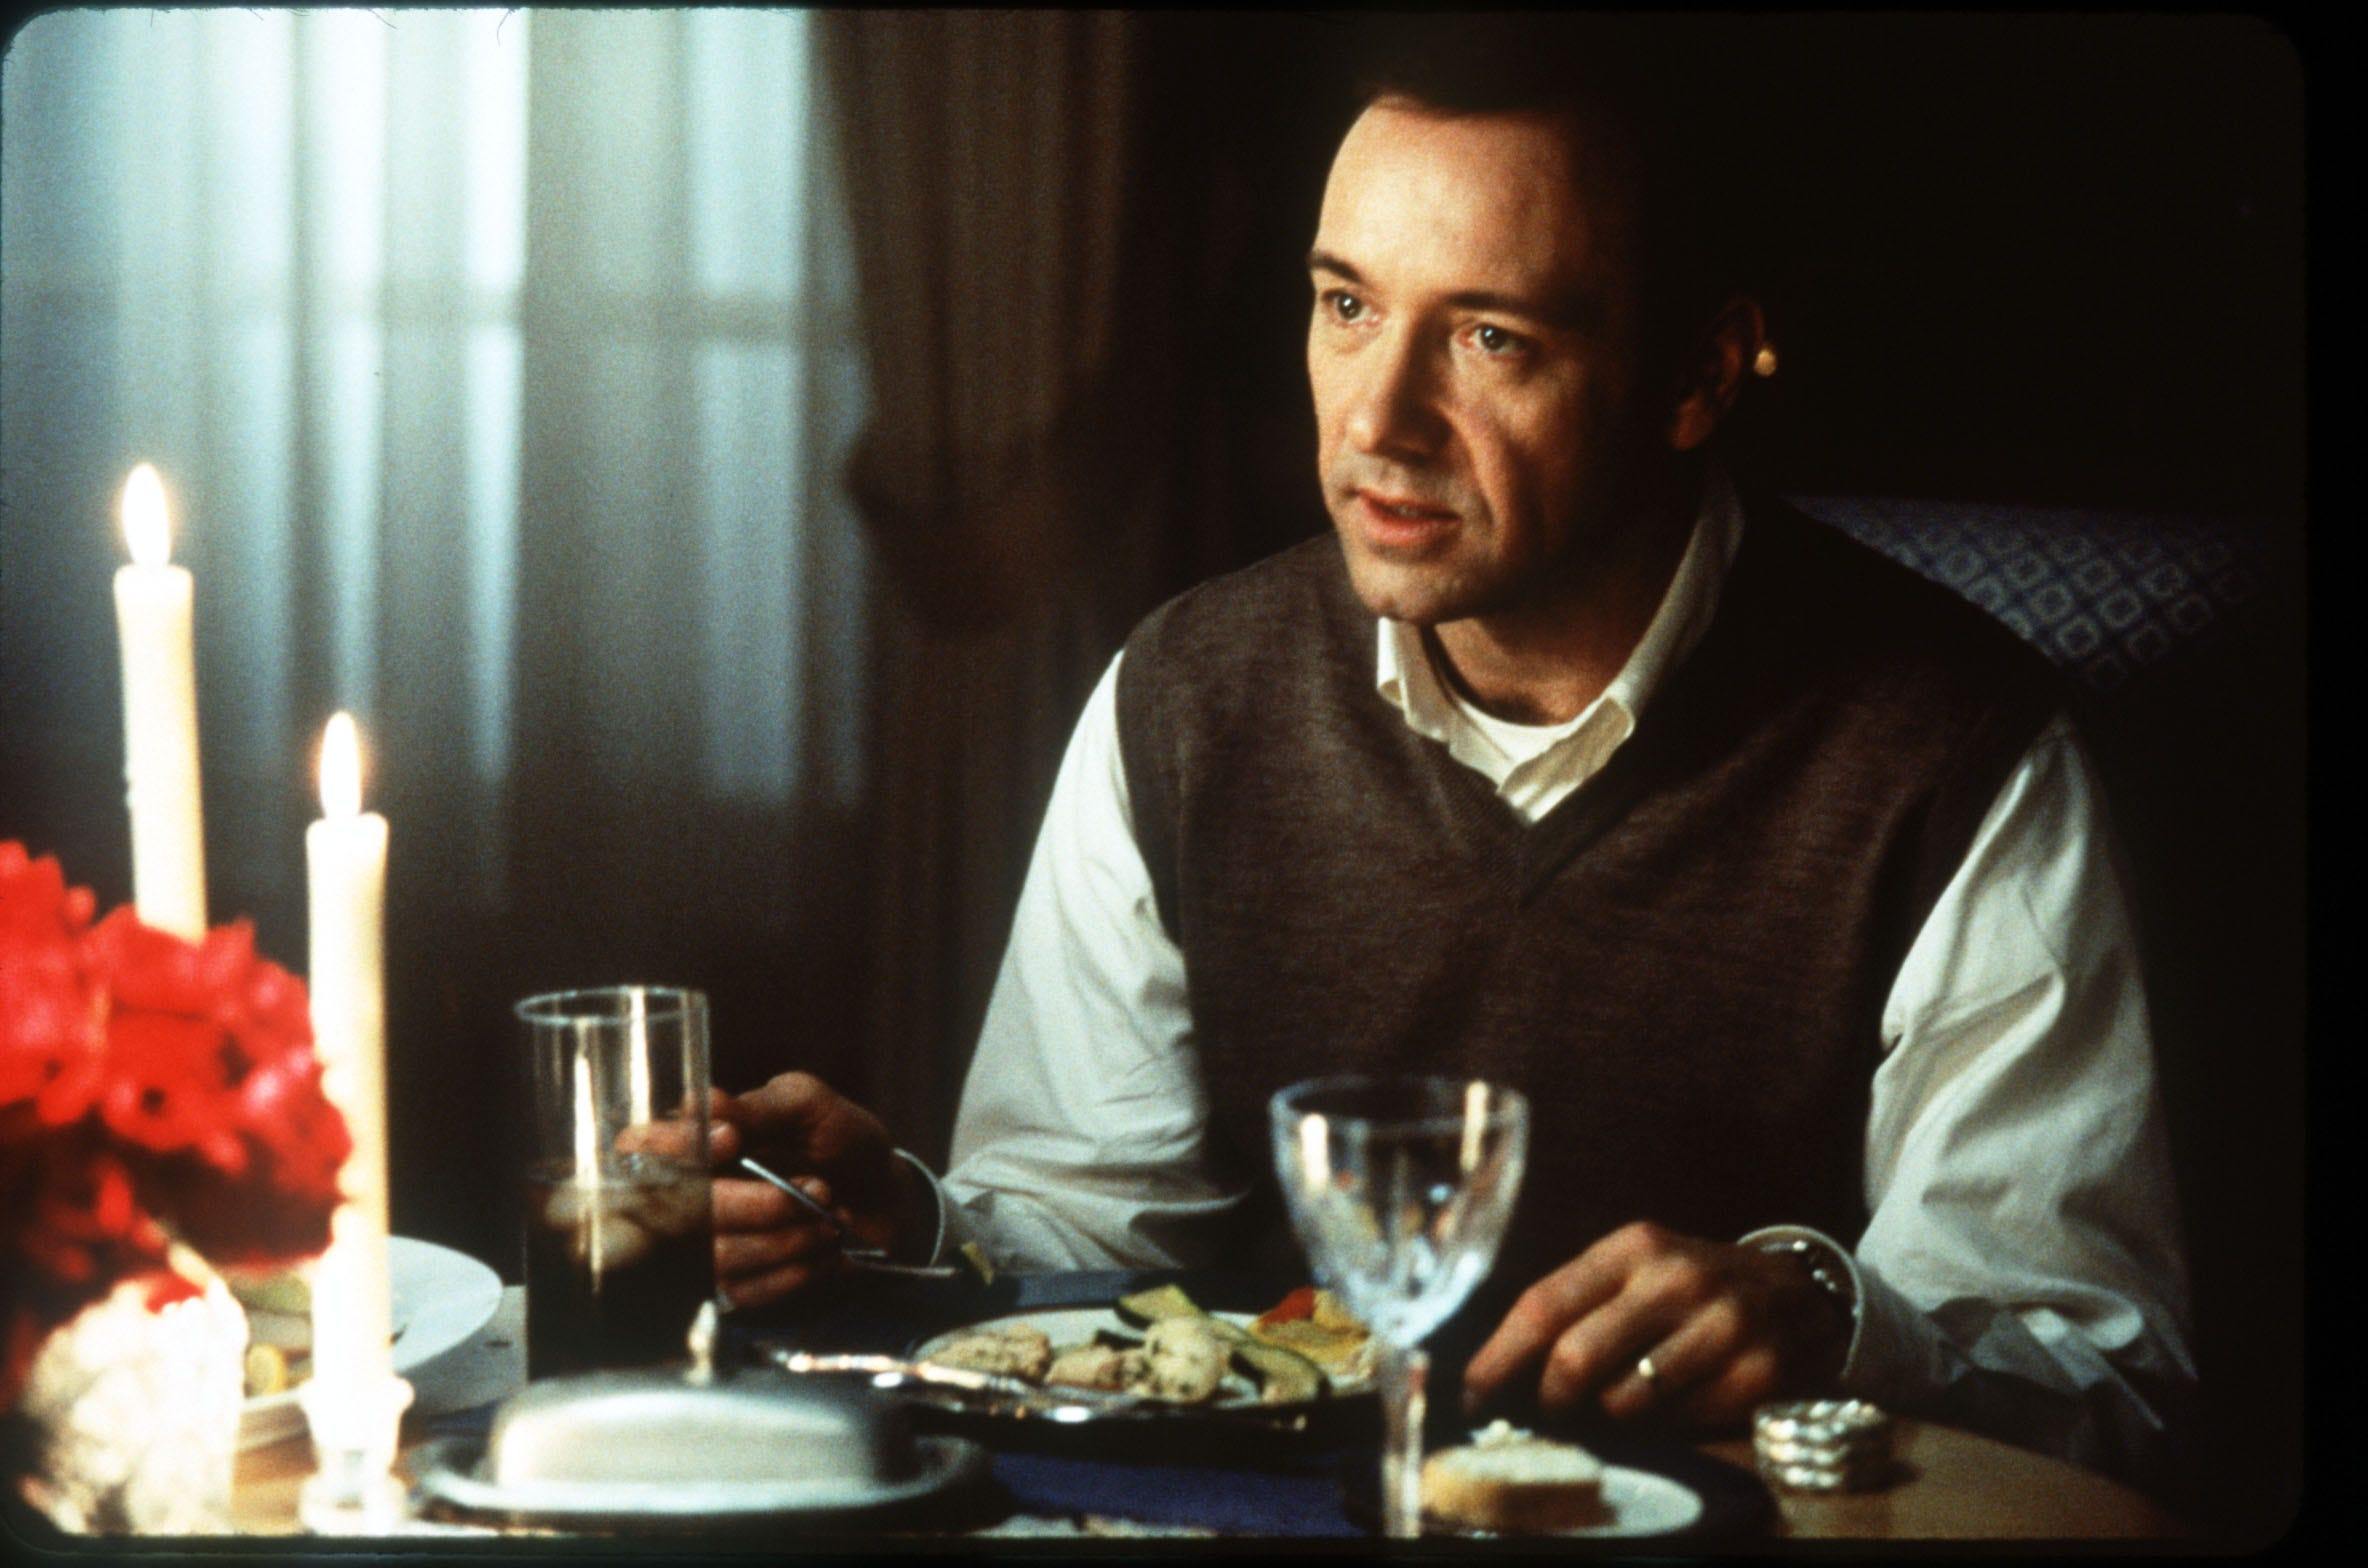 Kevin Spacey in a scene from the film American Beauty.